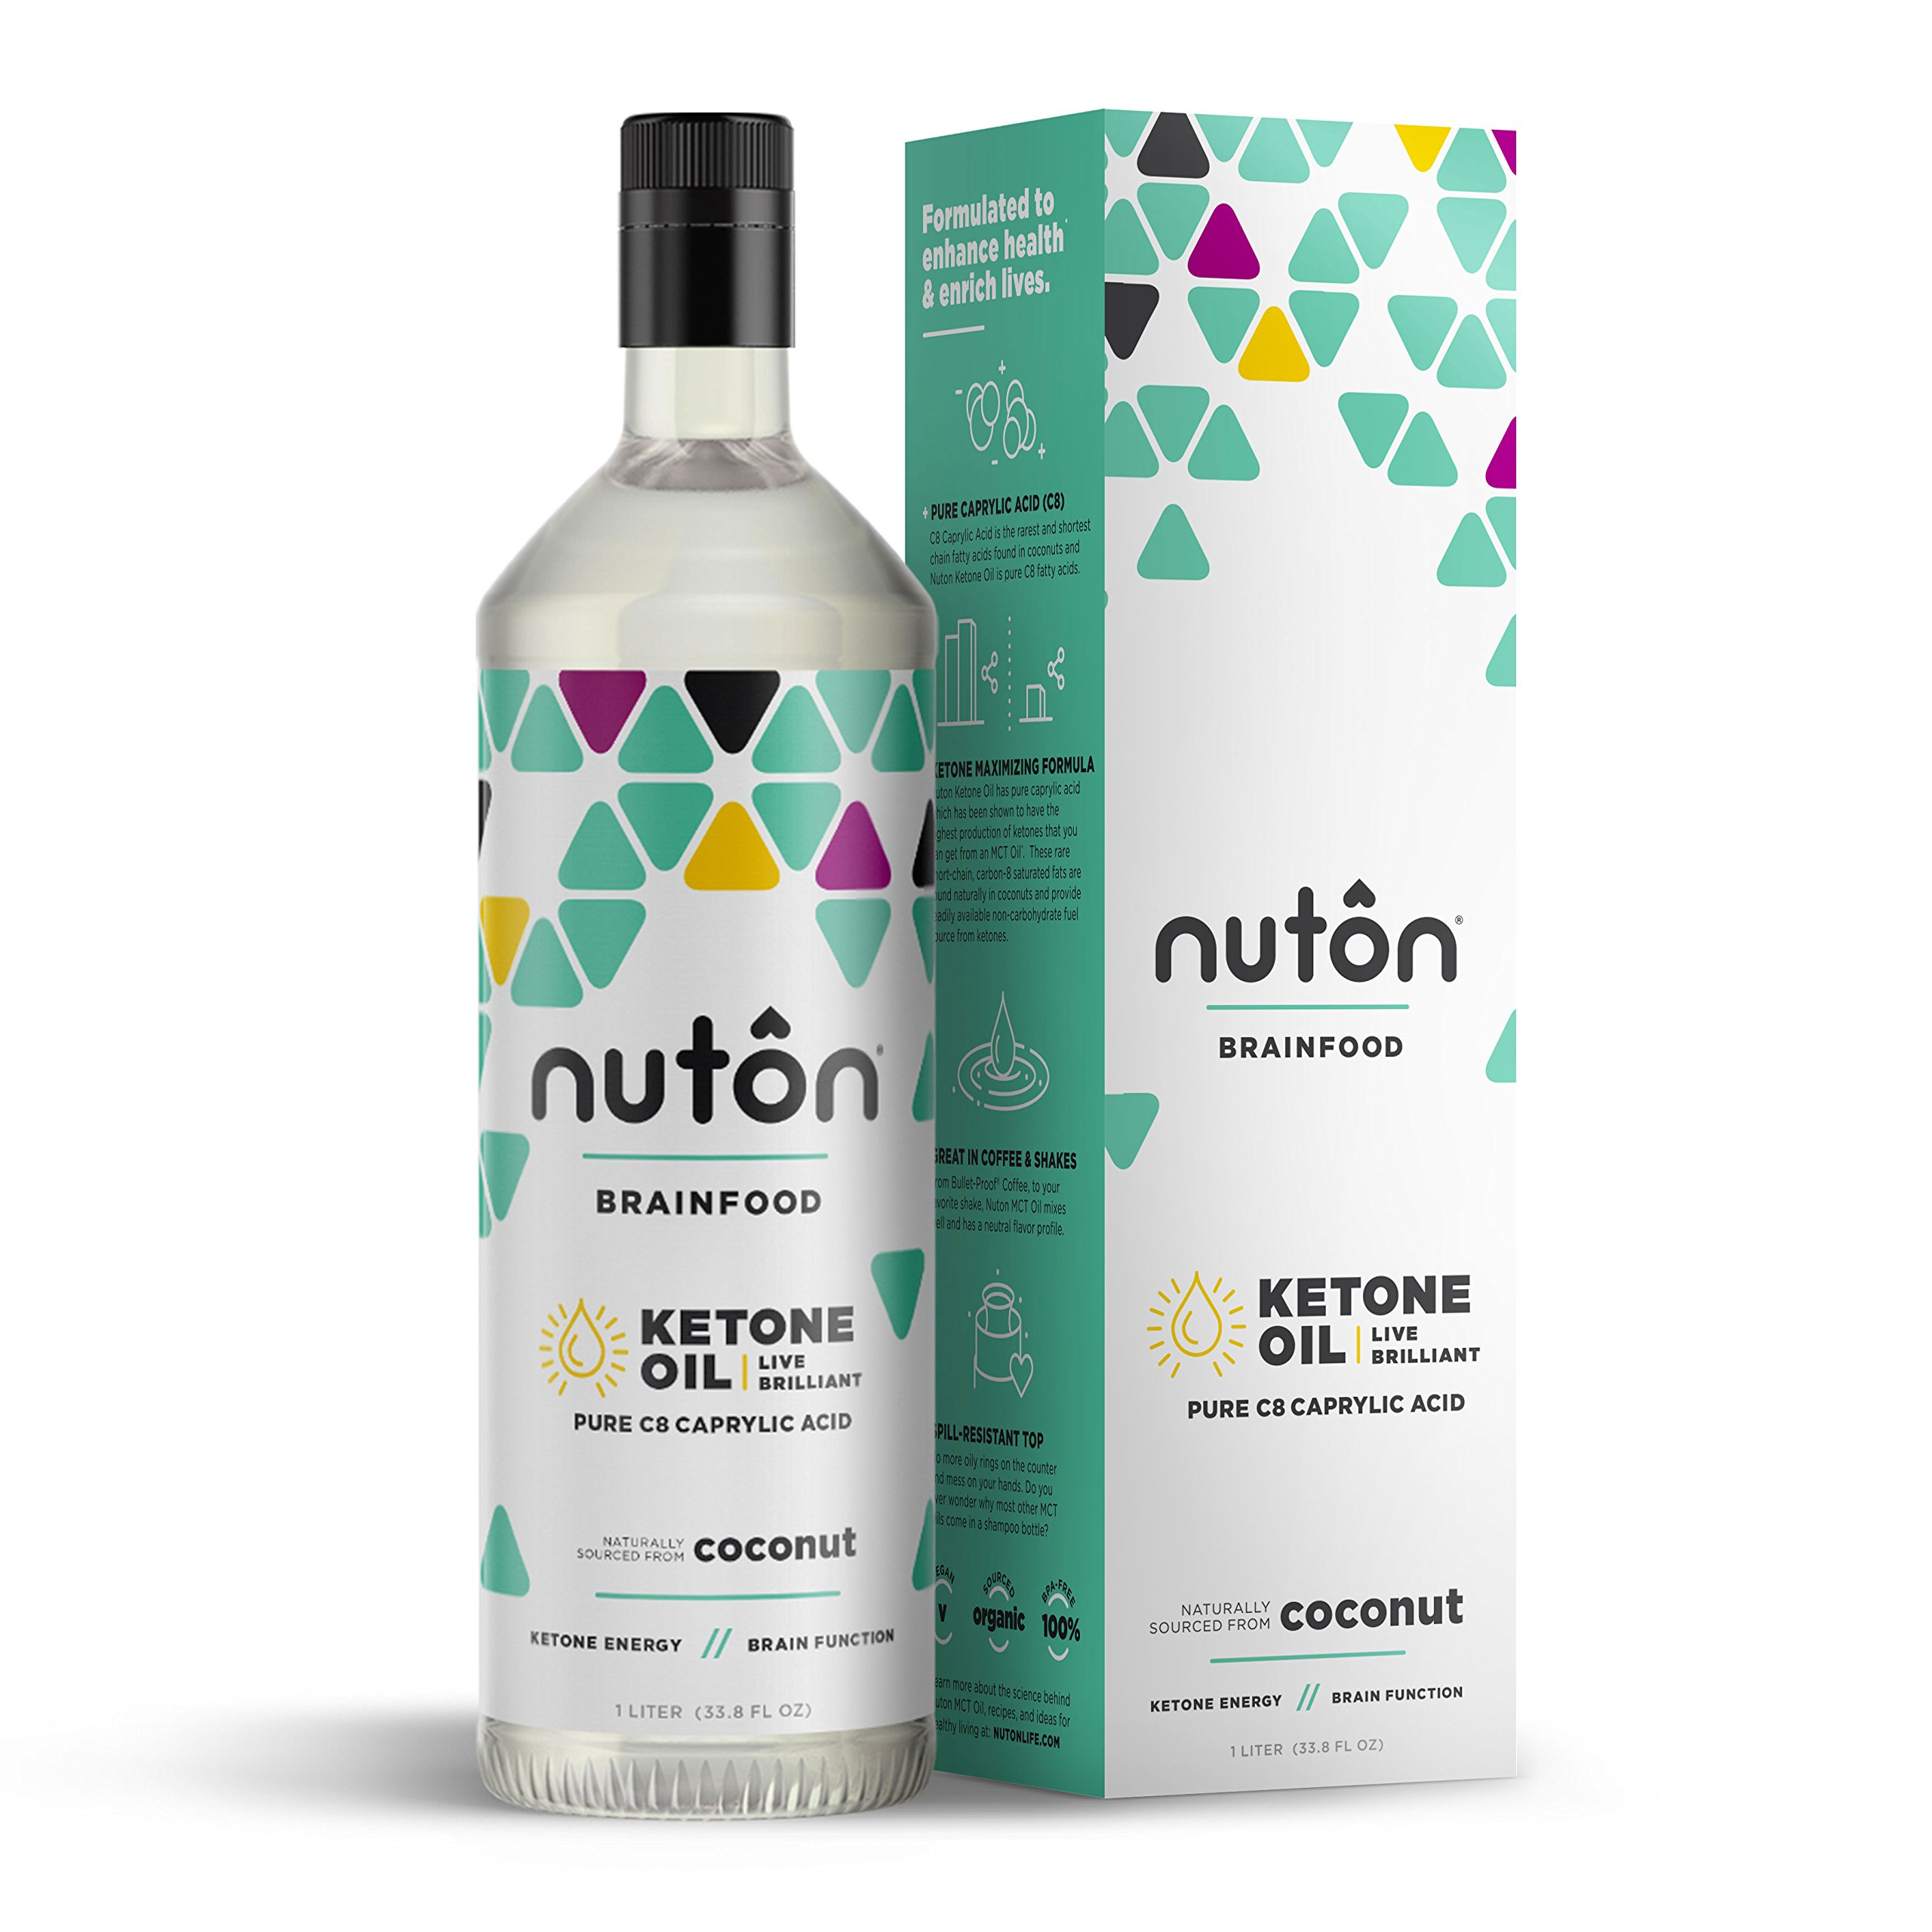 Nuton Pure C8 MCT Oil - 33.8oz | Compare to Brain Octane Oil | by Caprylic Acid has most efficient and clean ketone production | Sourced from organic coconuts